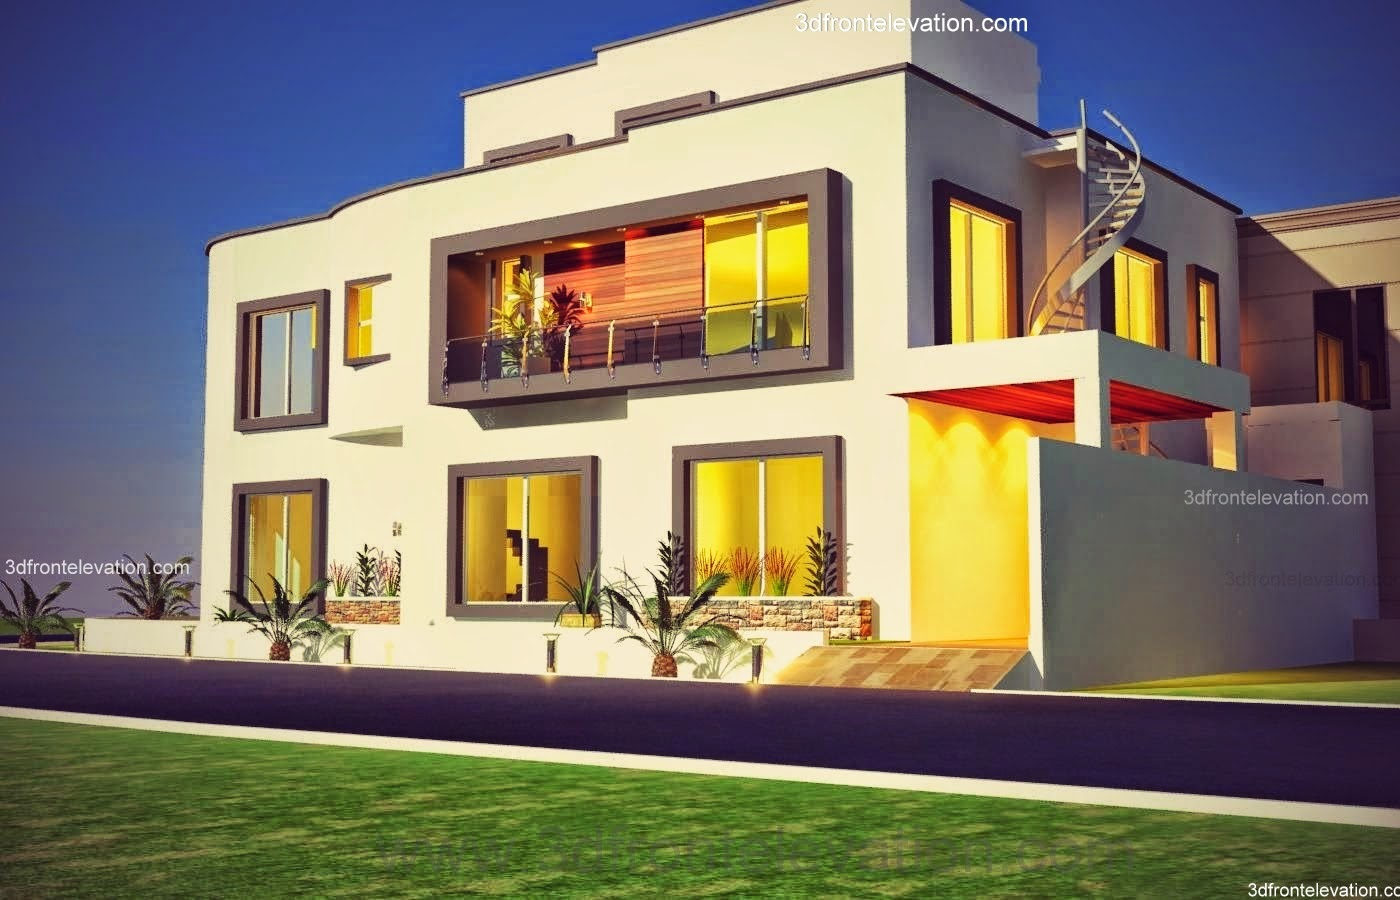 Casatreschic interior 10 marla plot modern contemporary for Bahria town islamabad home designs